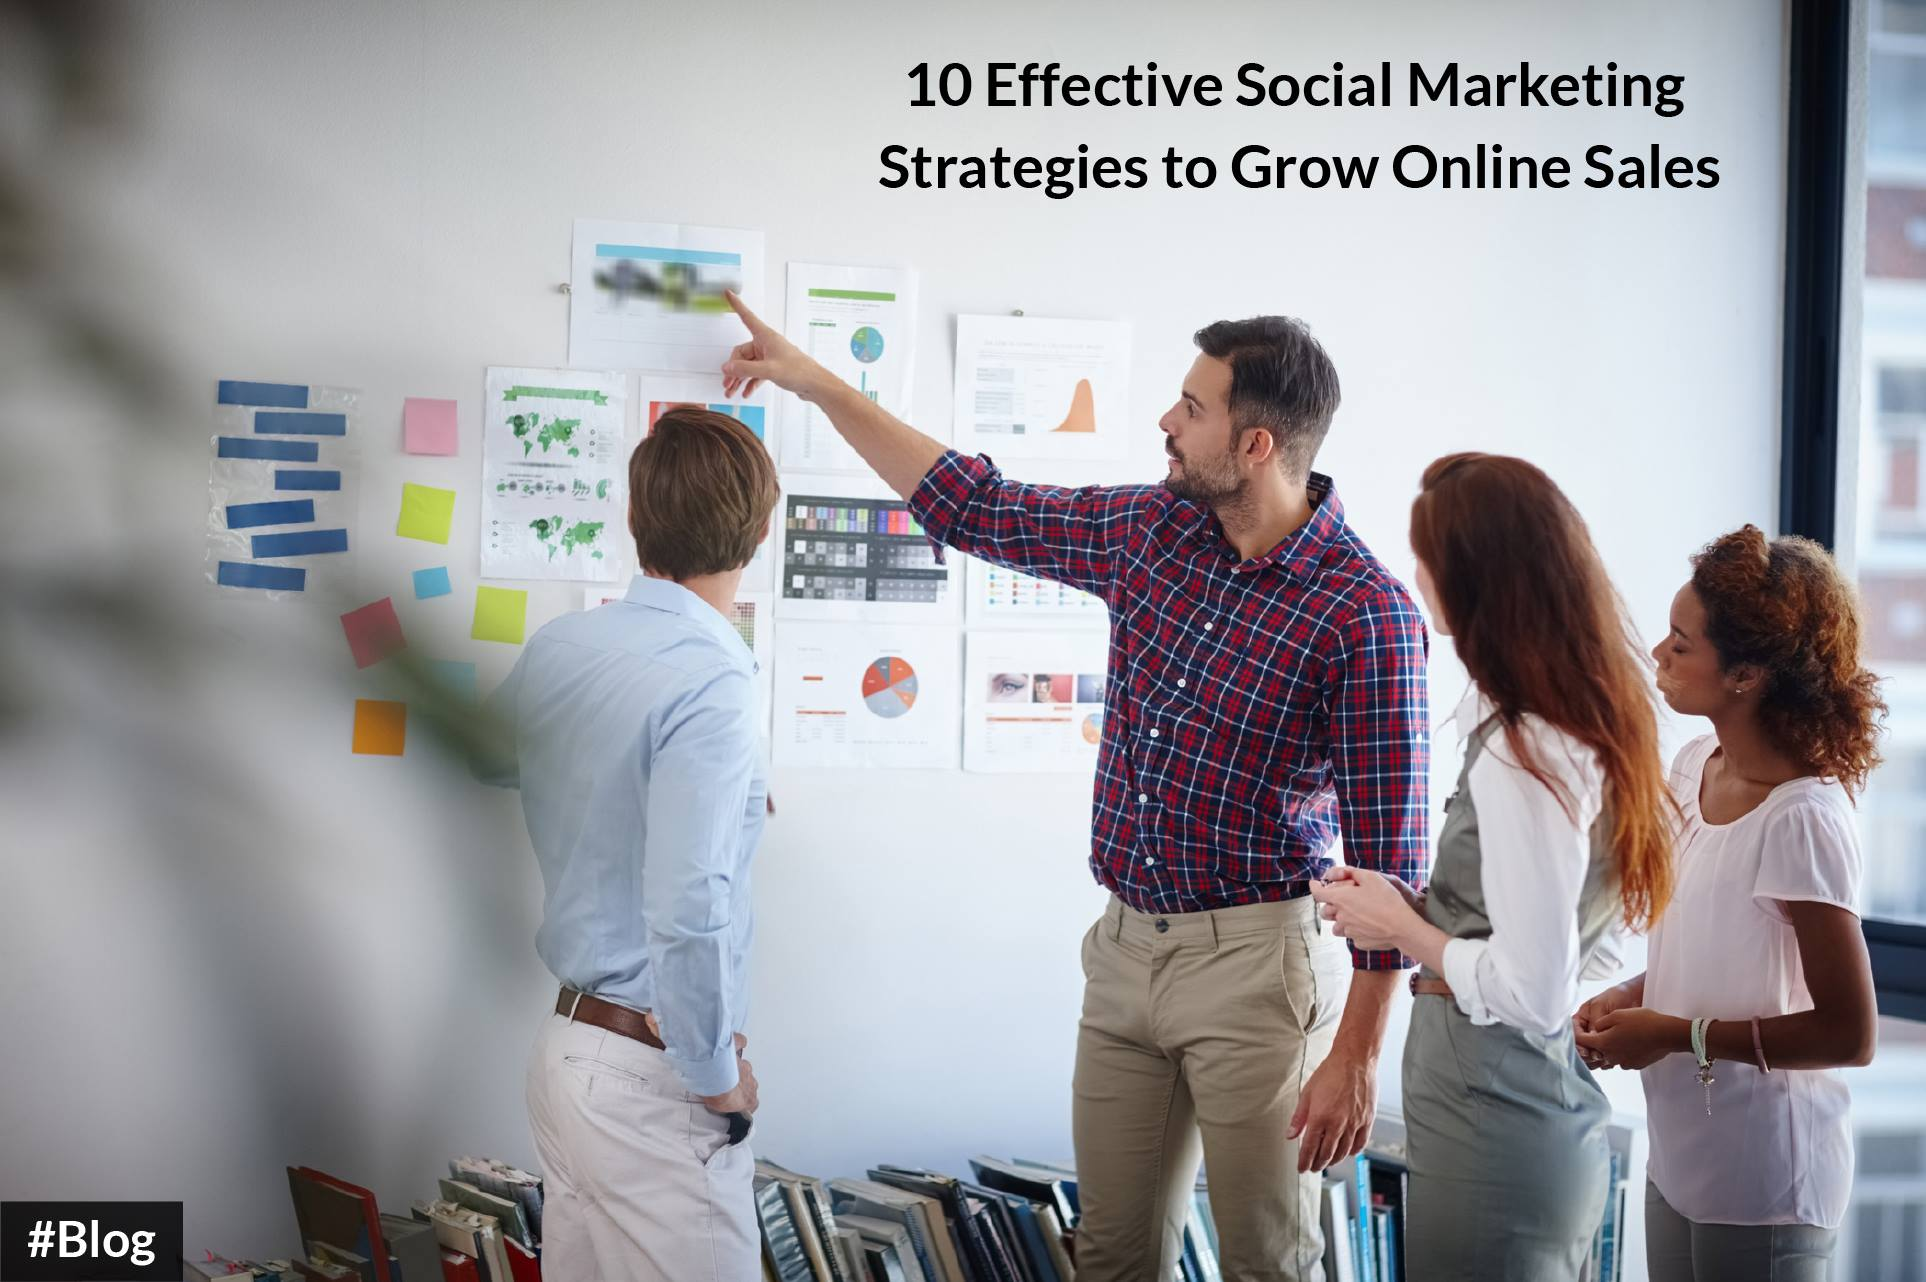 10 Effective Social Media Marketing Strategies